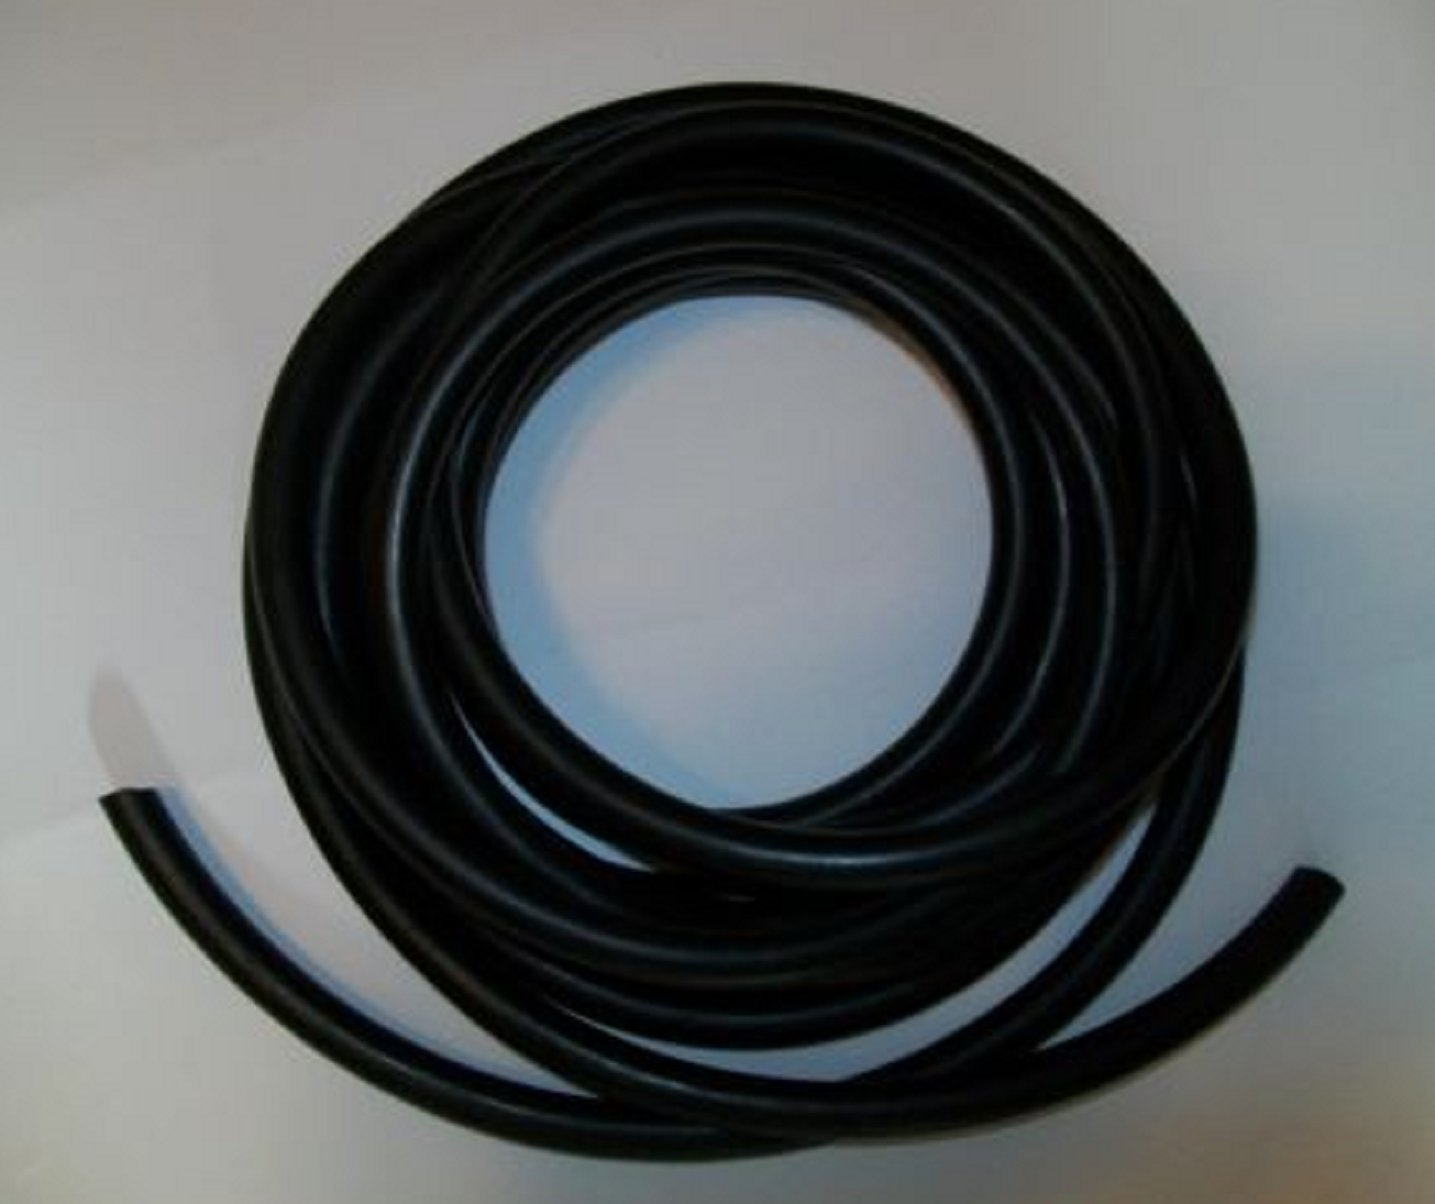 USA Premium Store 3/16'' I.D x 3/32'' wall X 3/8'' O.D Surgical Latex Tubing Rubber Tube BLACK FOOT